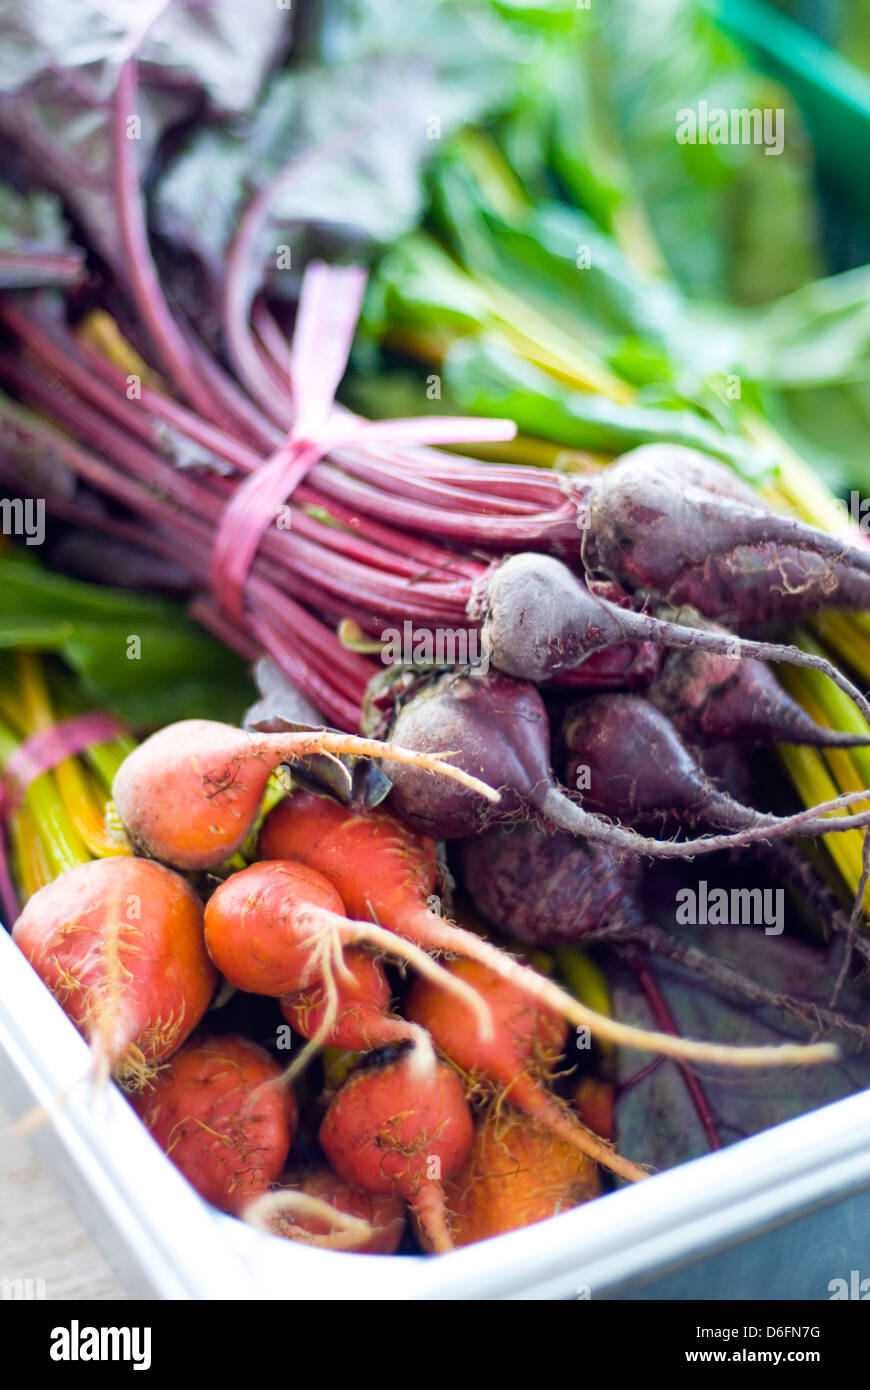 Tray of Red Beetroot and Golden Beetroot - Stock Image